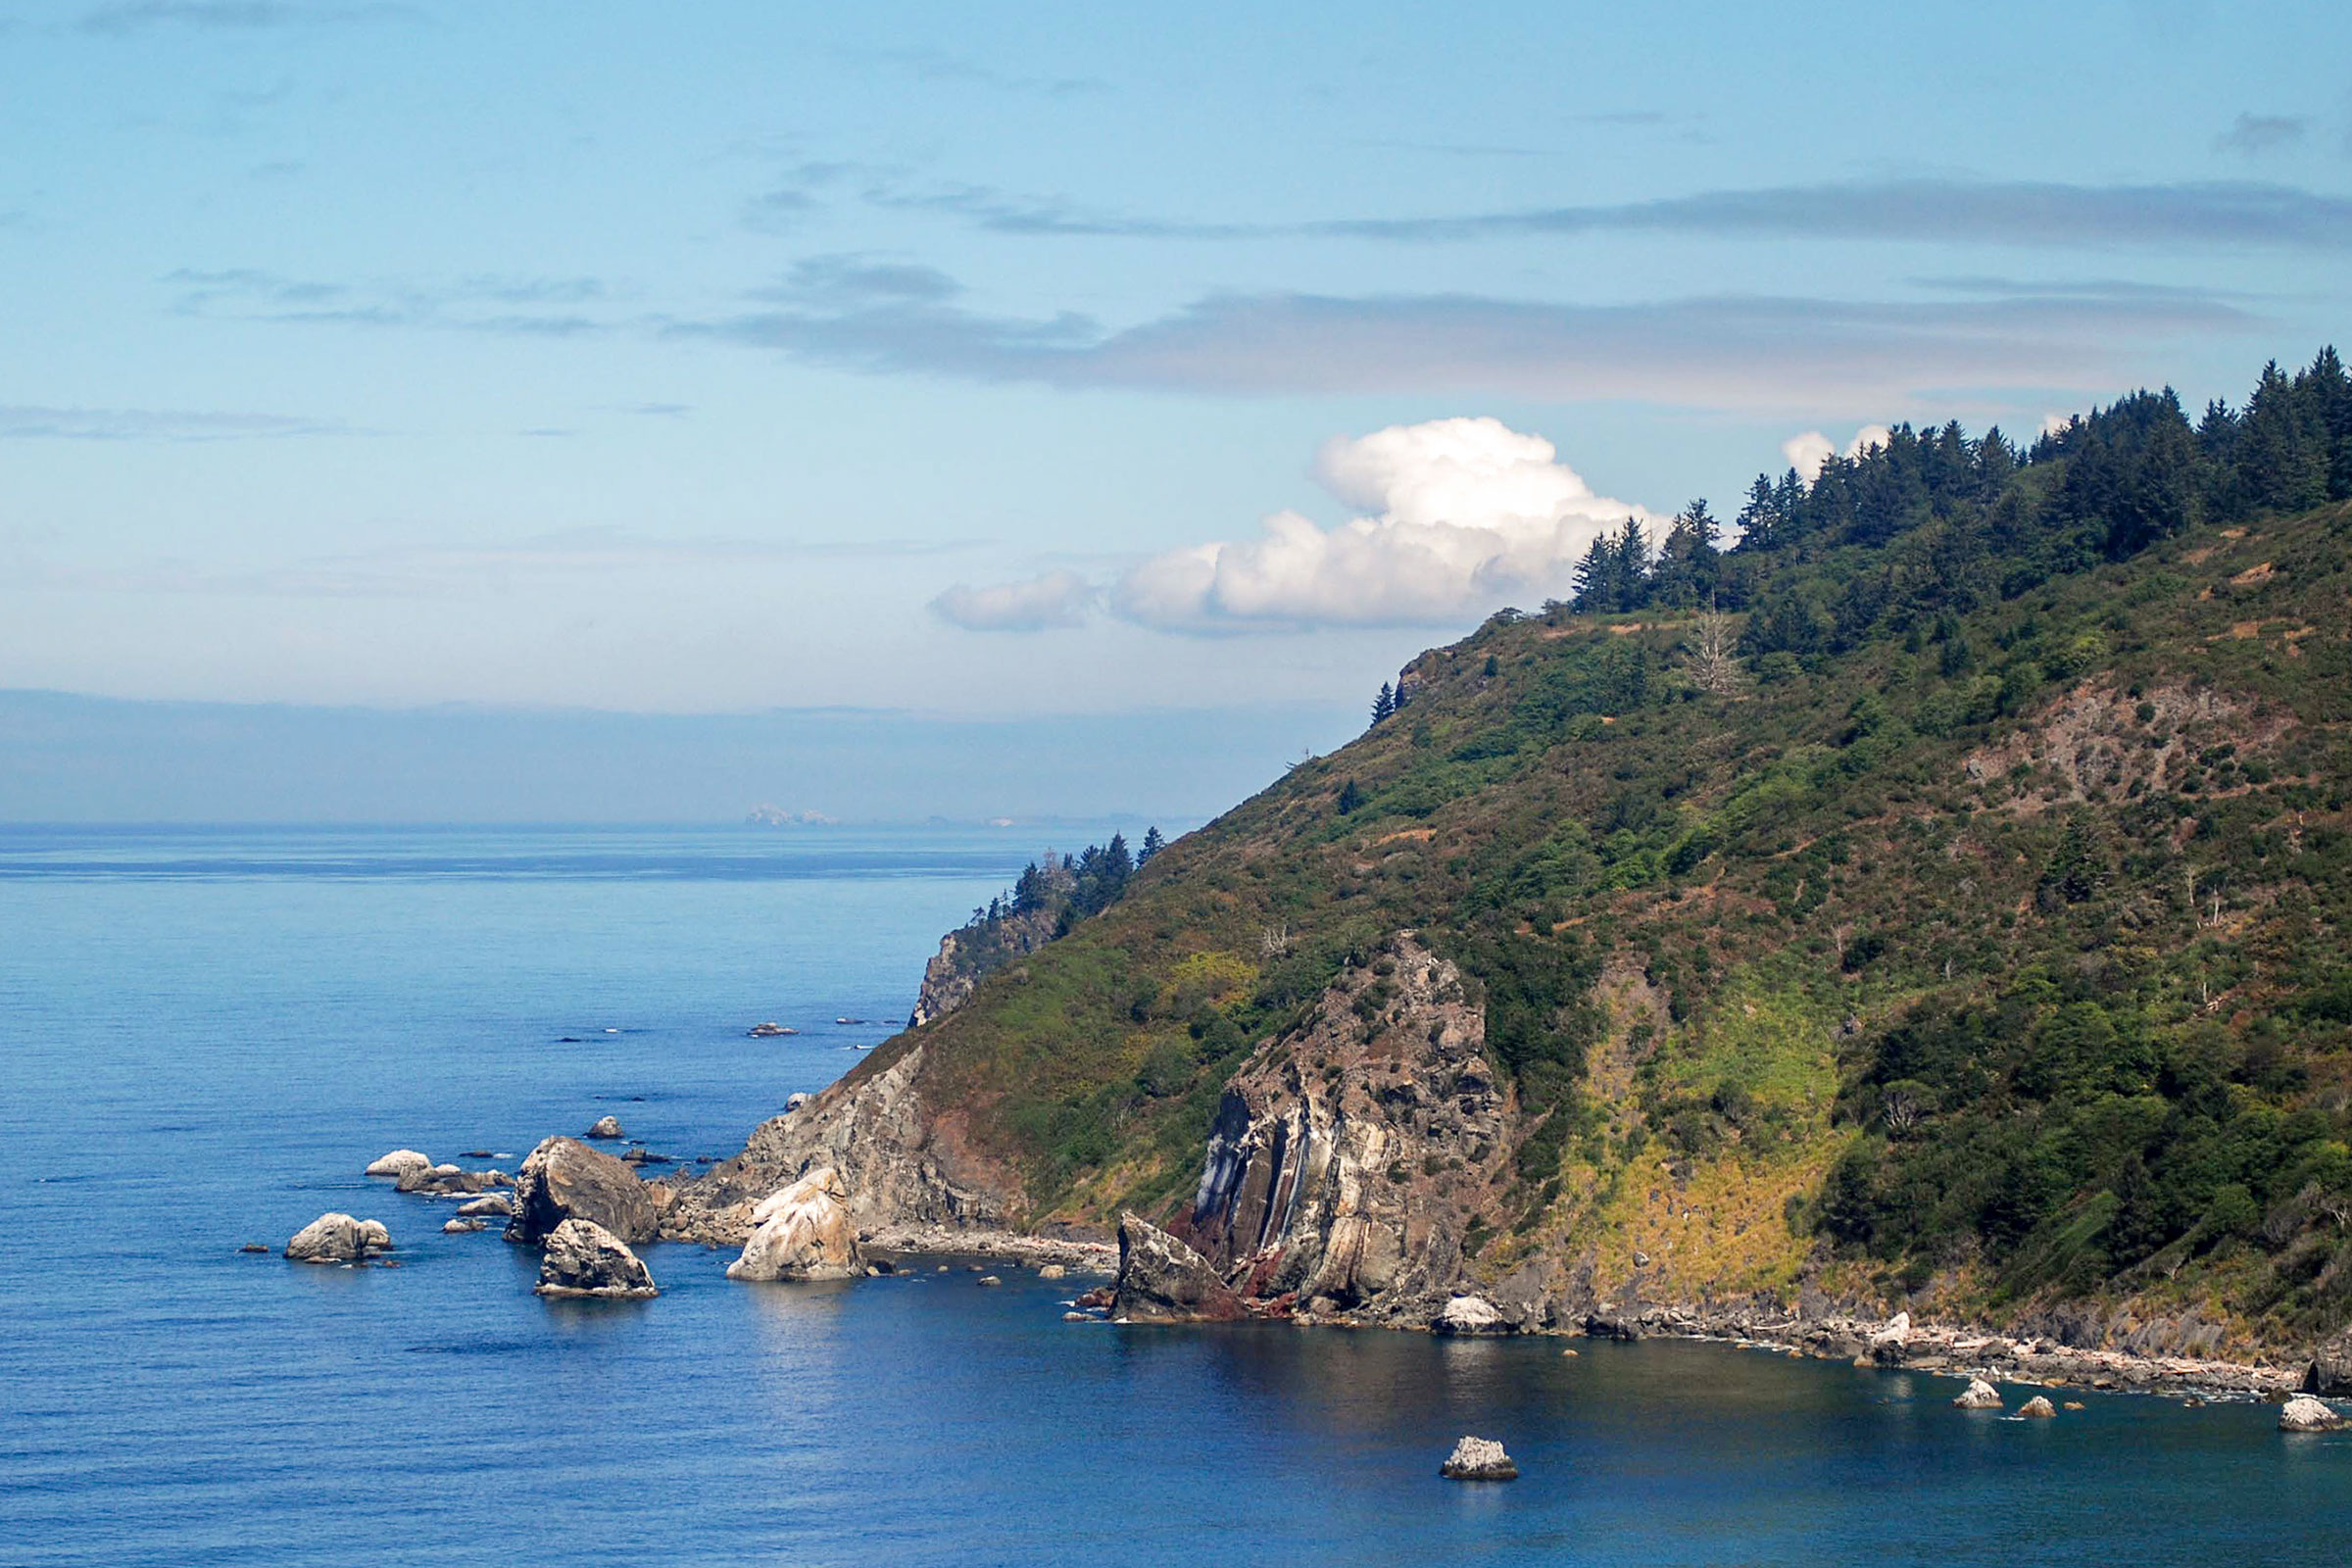 The bluffs to the south of the Klamath River mouth are expected to provide movement corridors (high winds), potential food resources if marine mammals wash up, and roosting habitat for condors. Matt Mais/Yurok Tribe